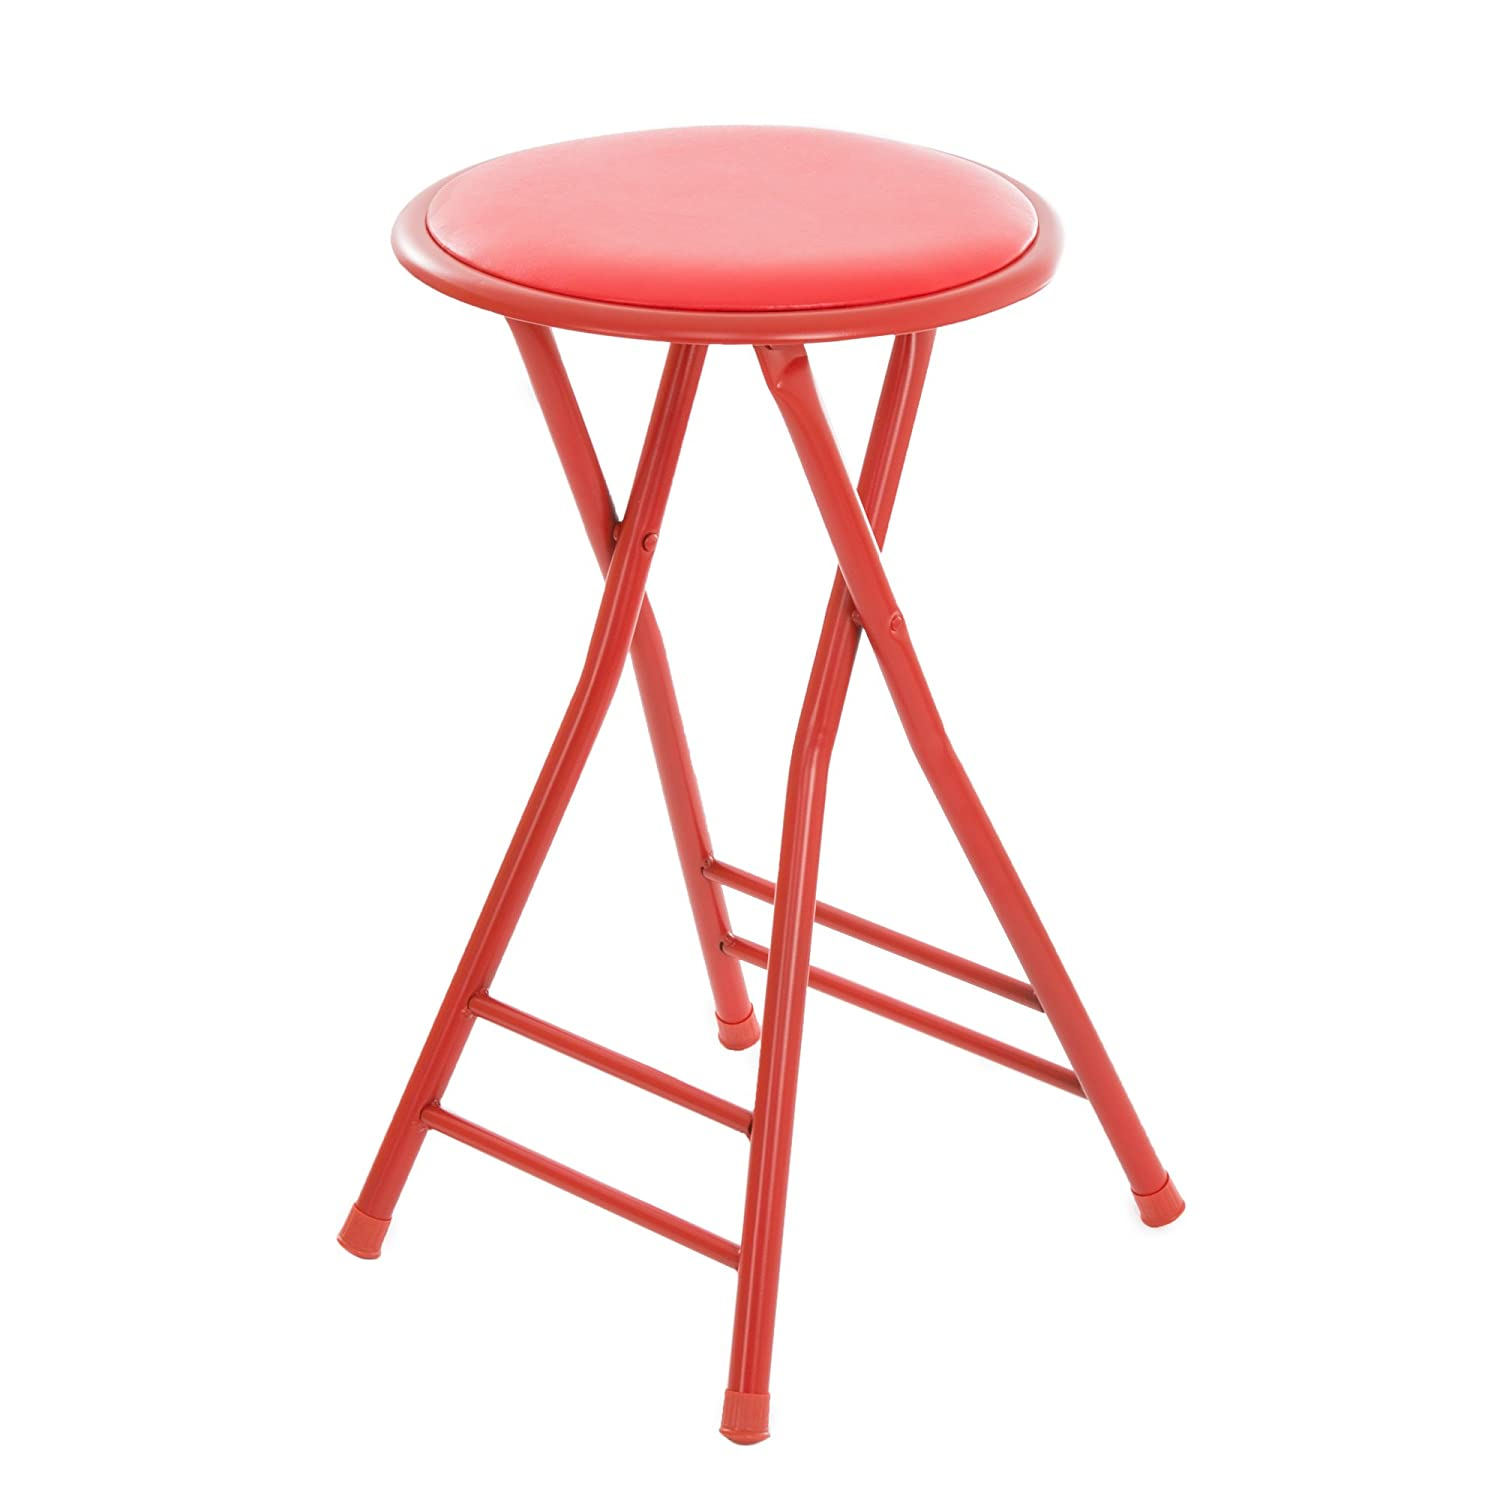 Rec or Gameroom Heavy Duty 24-Inch Collapsible Padded Round Stool with 300 Pound Limit for Dorm Trademark Home Folding Stool Red